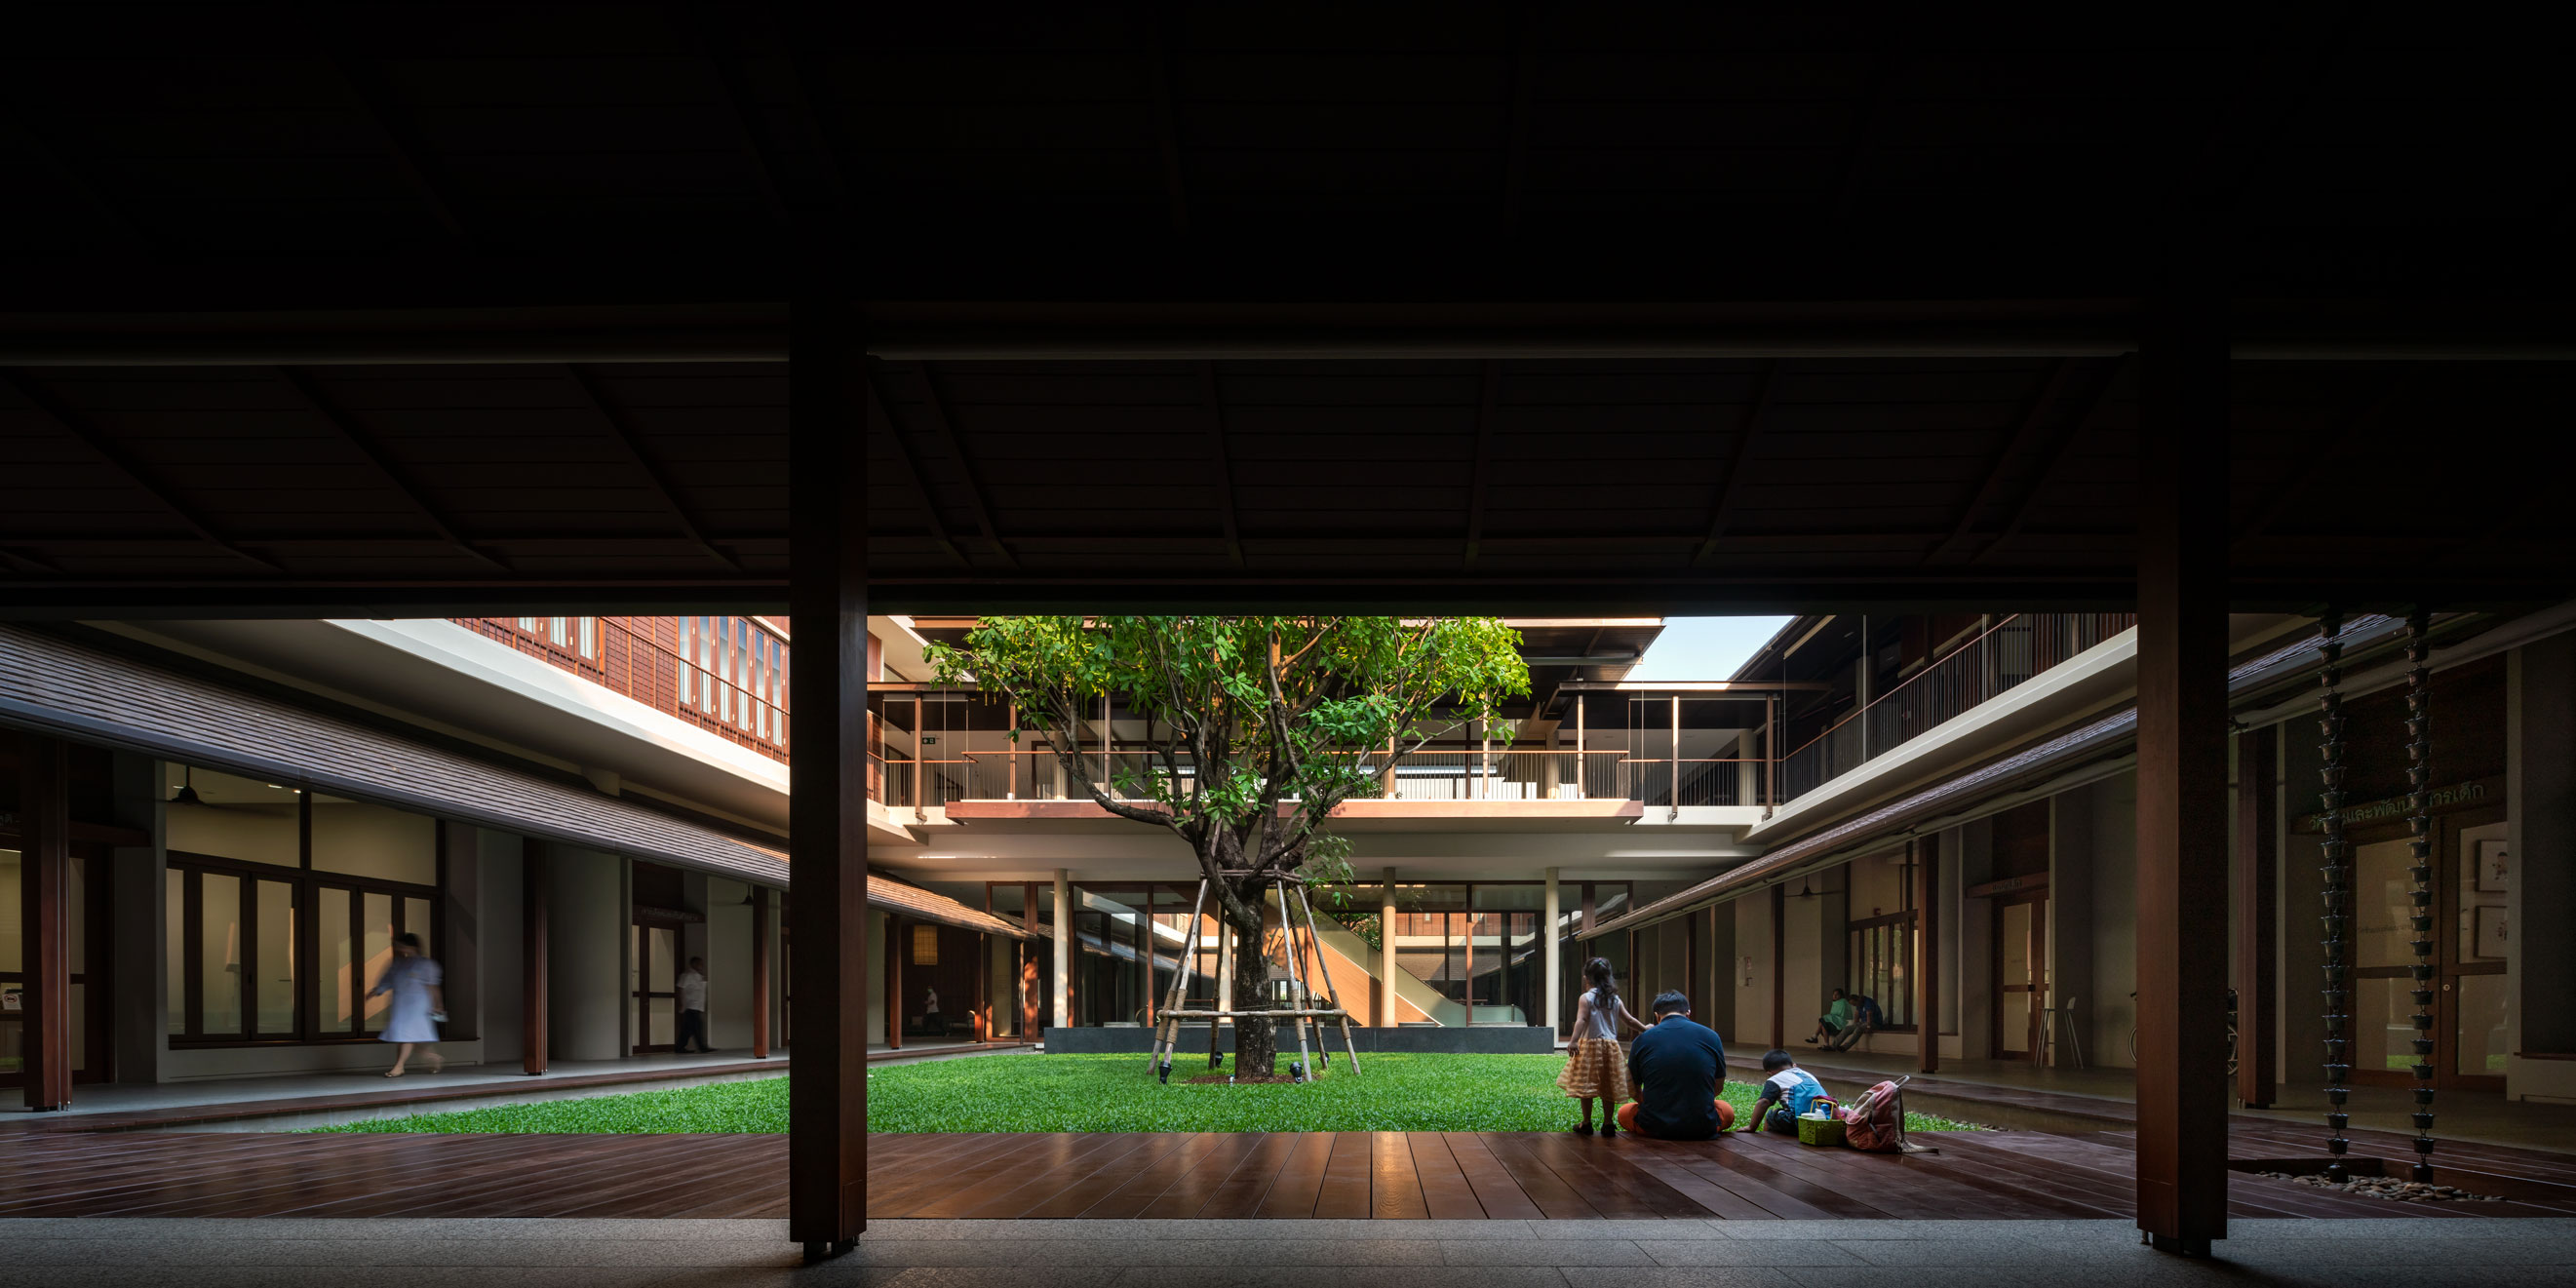 Ratchaphruek Hospital Khon Kaen by Arsomslip Community and Environment Architect (II) Interior — Wison Tungthunya & W Workspace